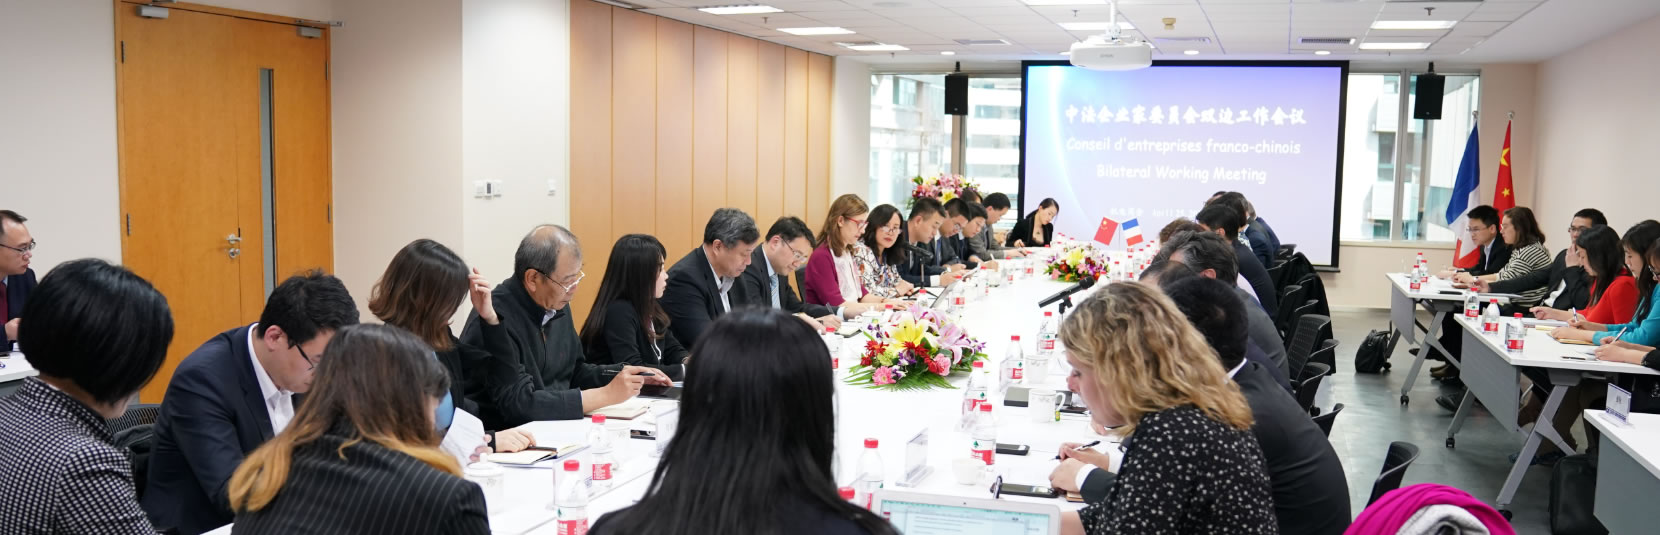 Bilateral Working Meeting of Council of Entrepreneurs France-China (CEFC) Held in CCCME